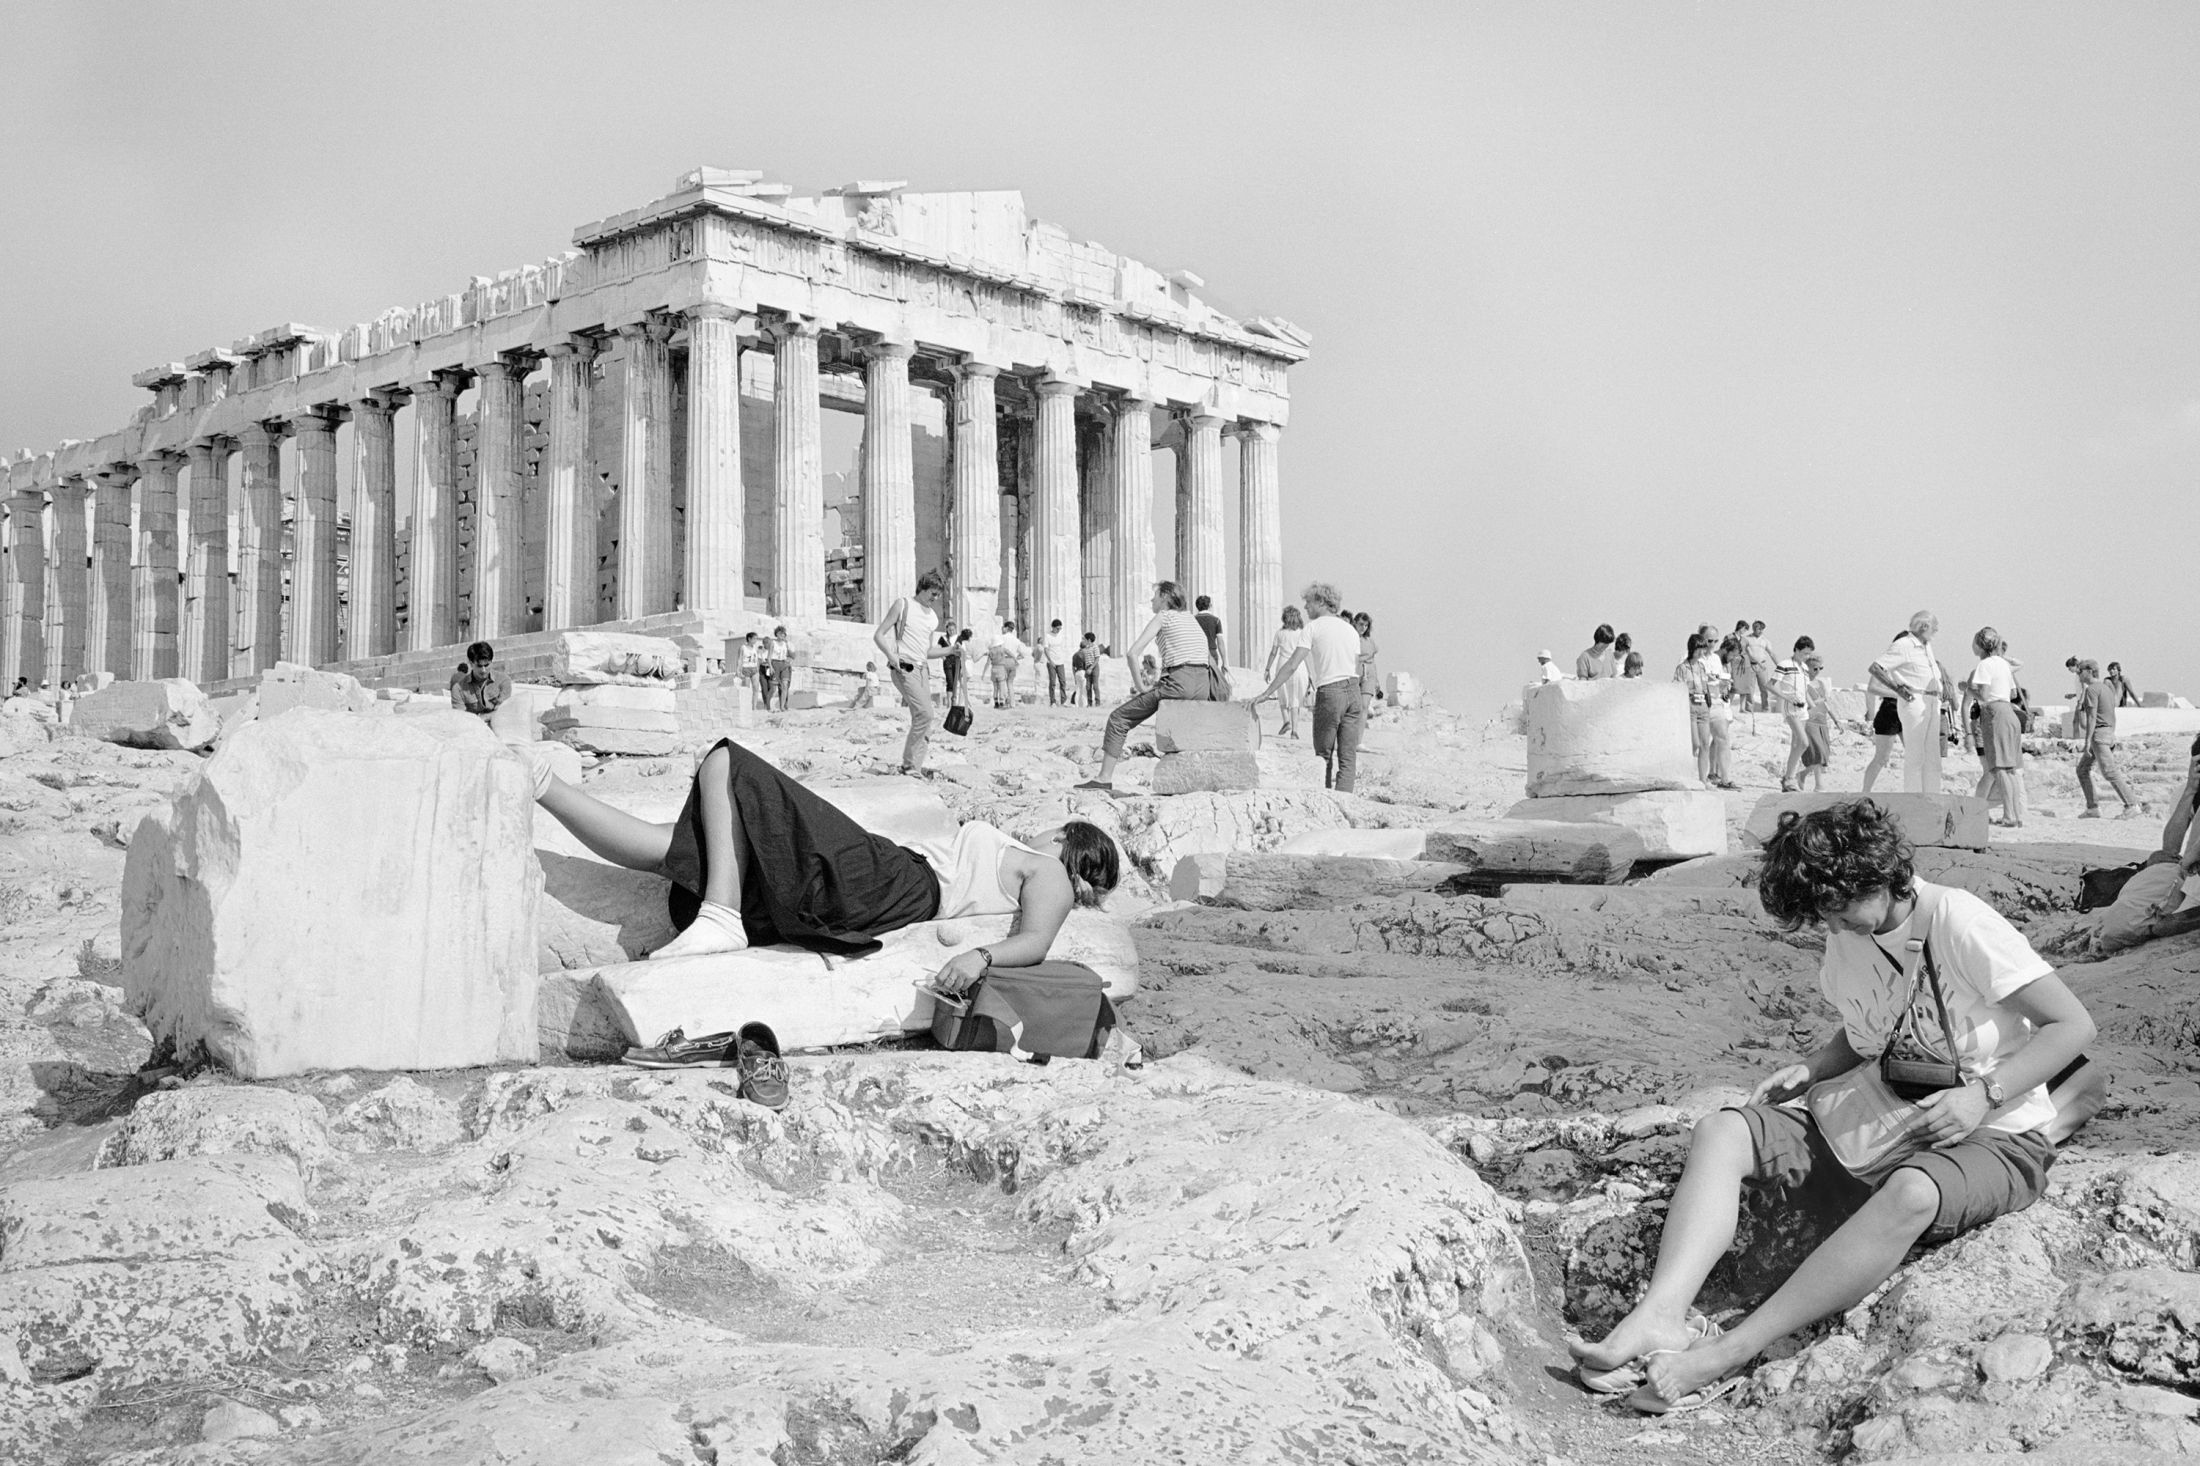 https://xage.ru/media/posts/2019/11/25/on-acropolis-photographs-of-summer-tourists_jT4QUvY.jpg